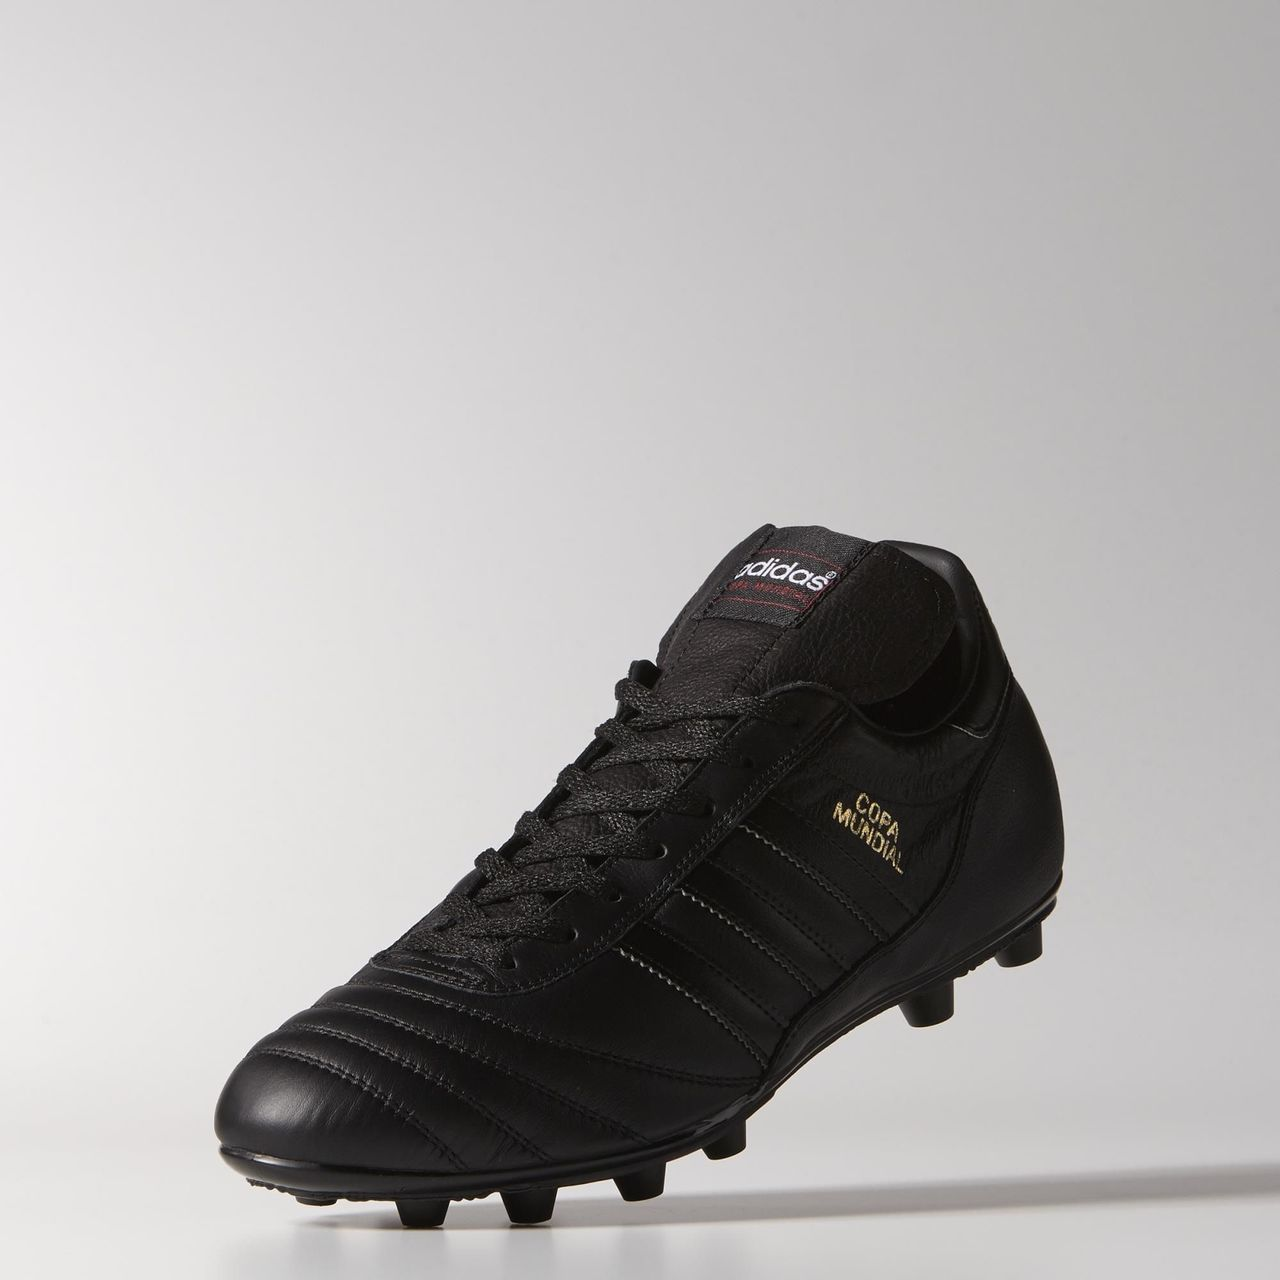 ... norway click to enlarge image adidas copa mundial football boots a.  0dd14 49c6b 1ddd90e9b3